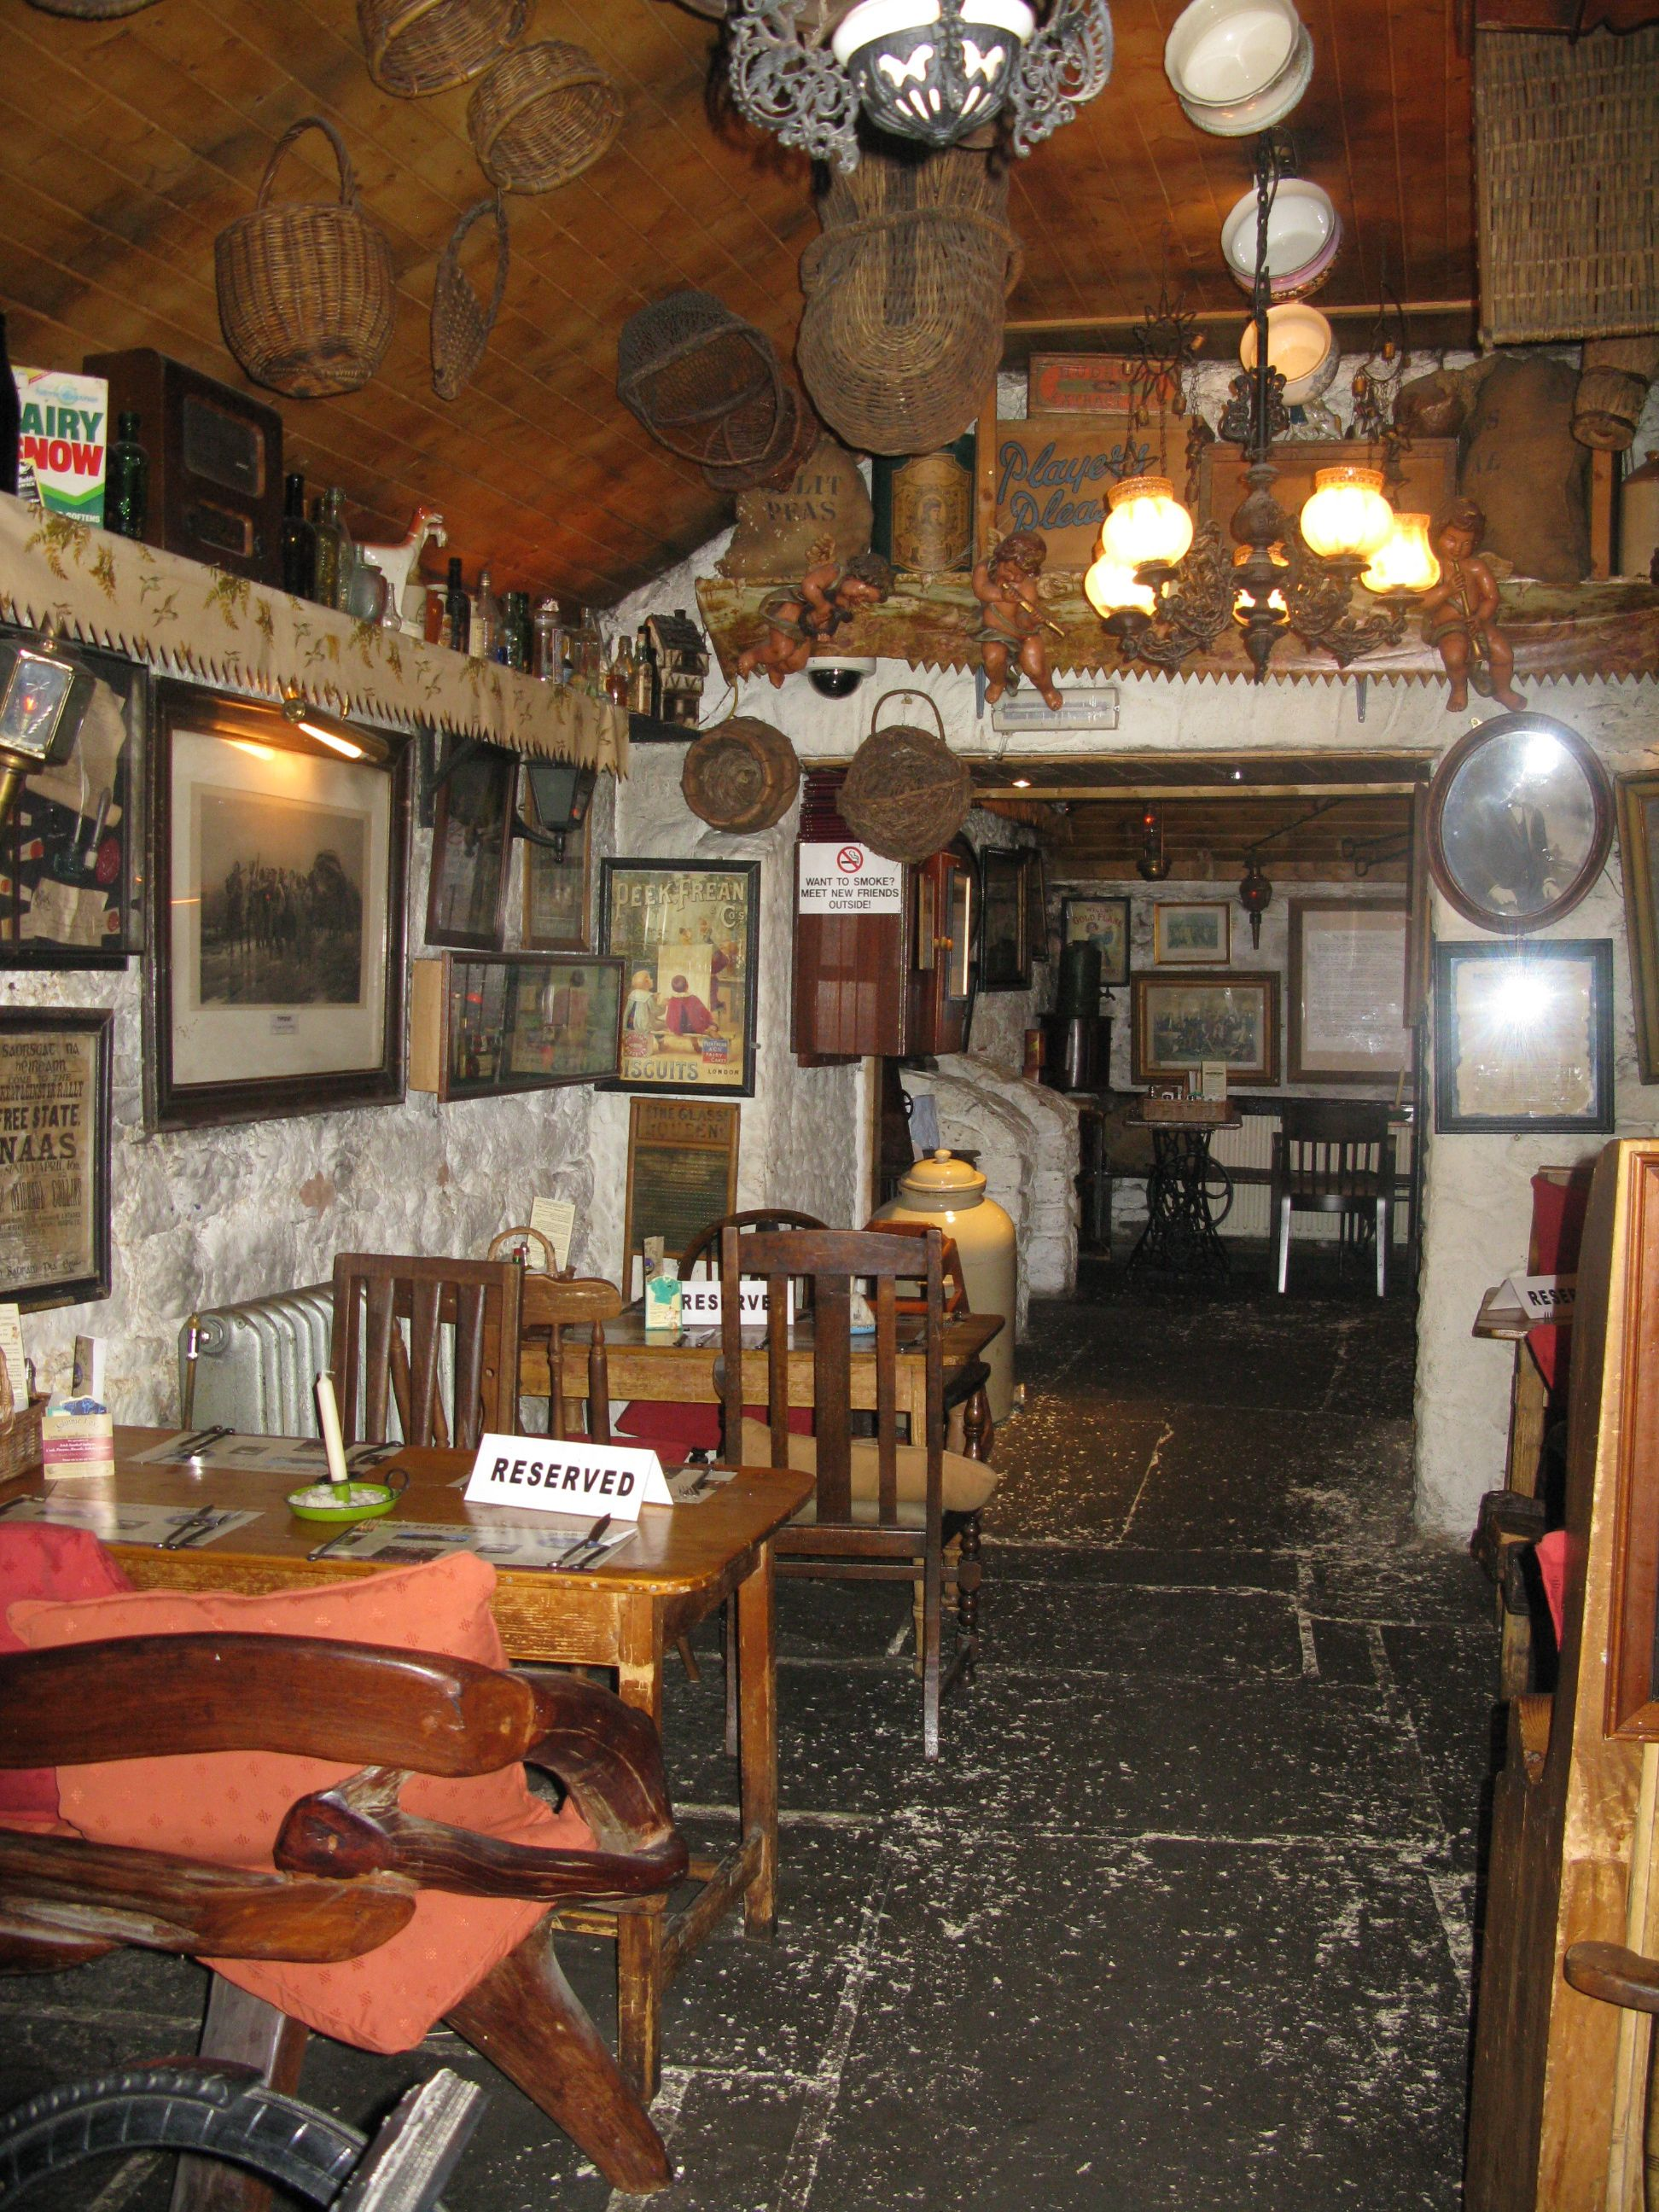 highestpubinireland Irish pub interior, Pub interior